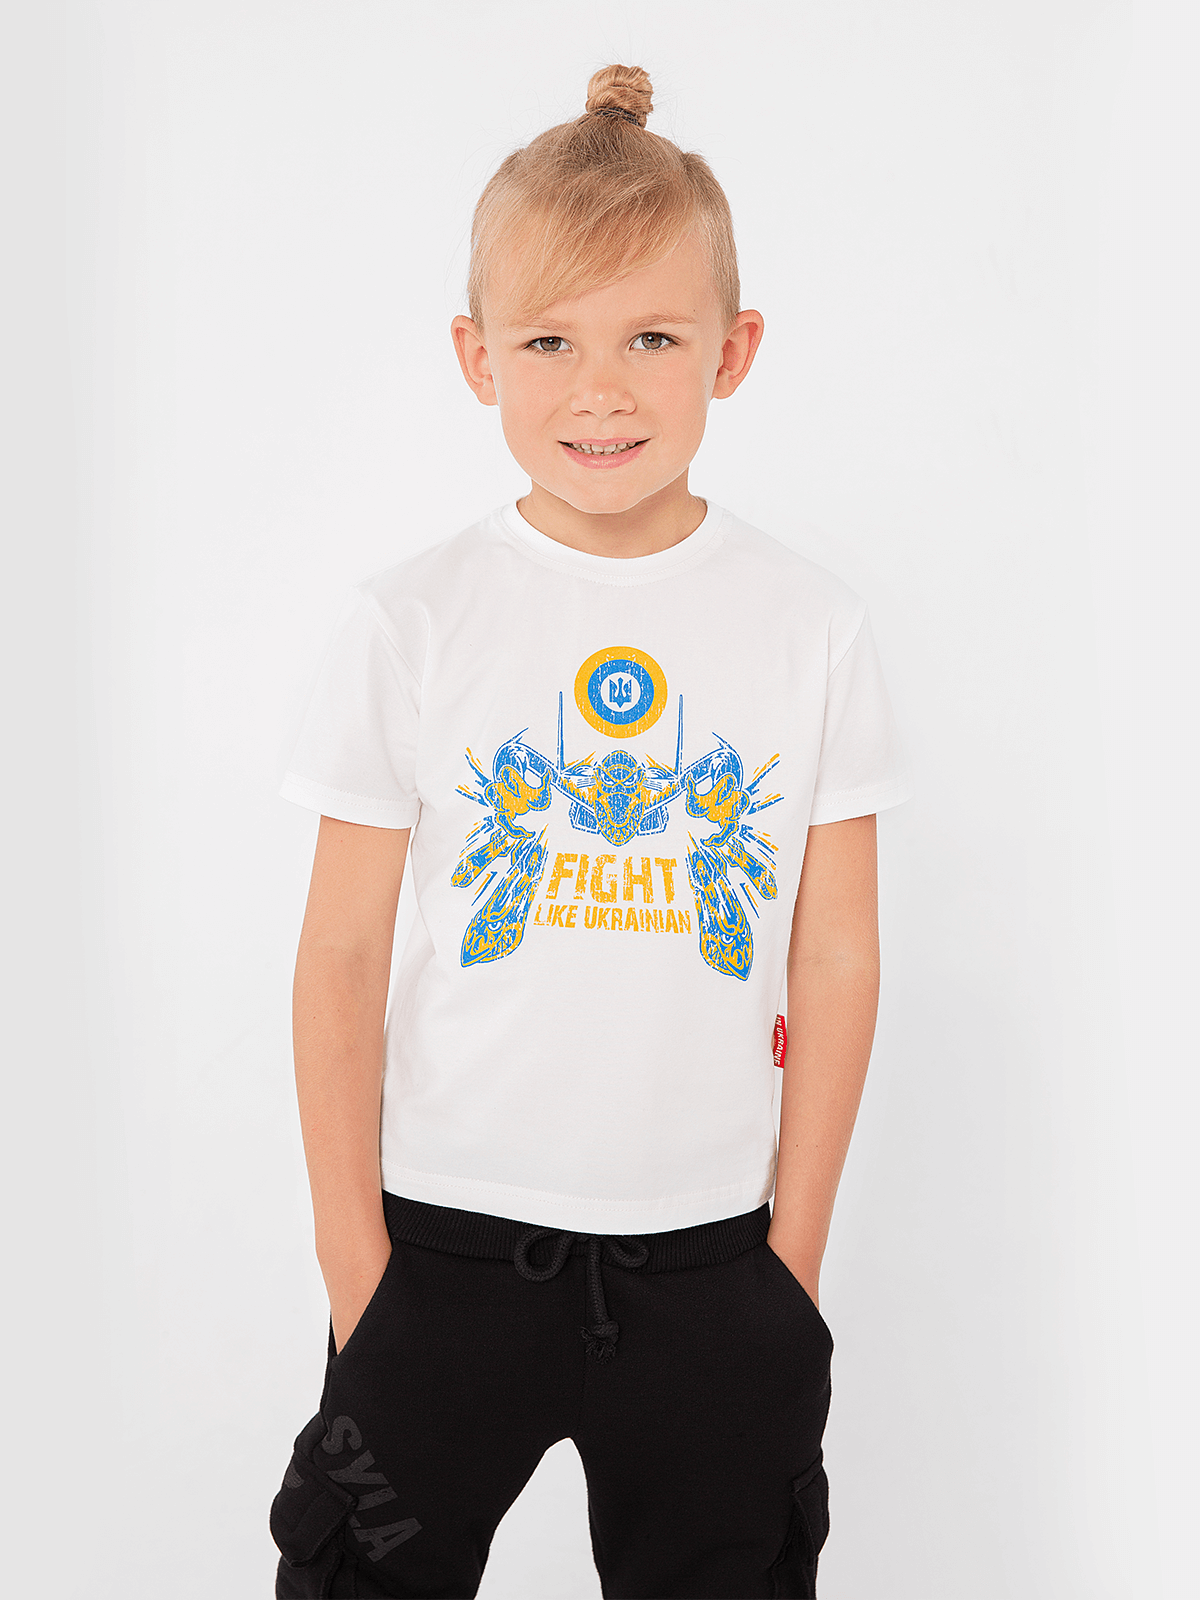 Kids T-Shirt Flu. Color off-white. Material: 95% cotton, 5% spandex.